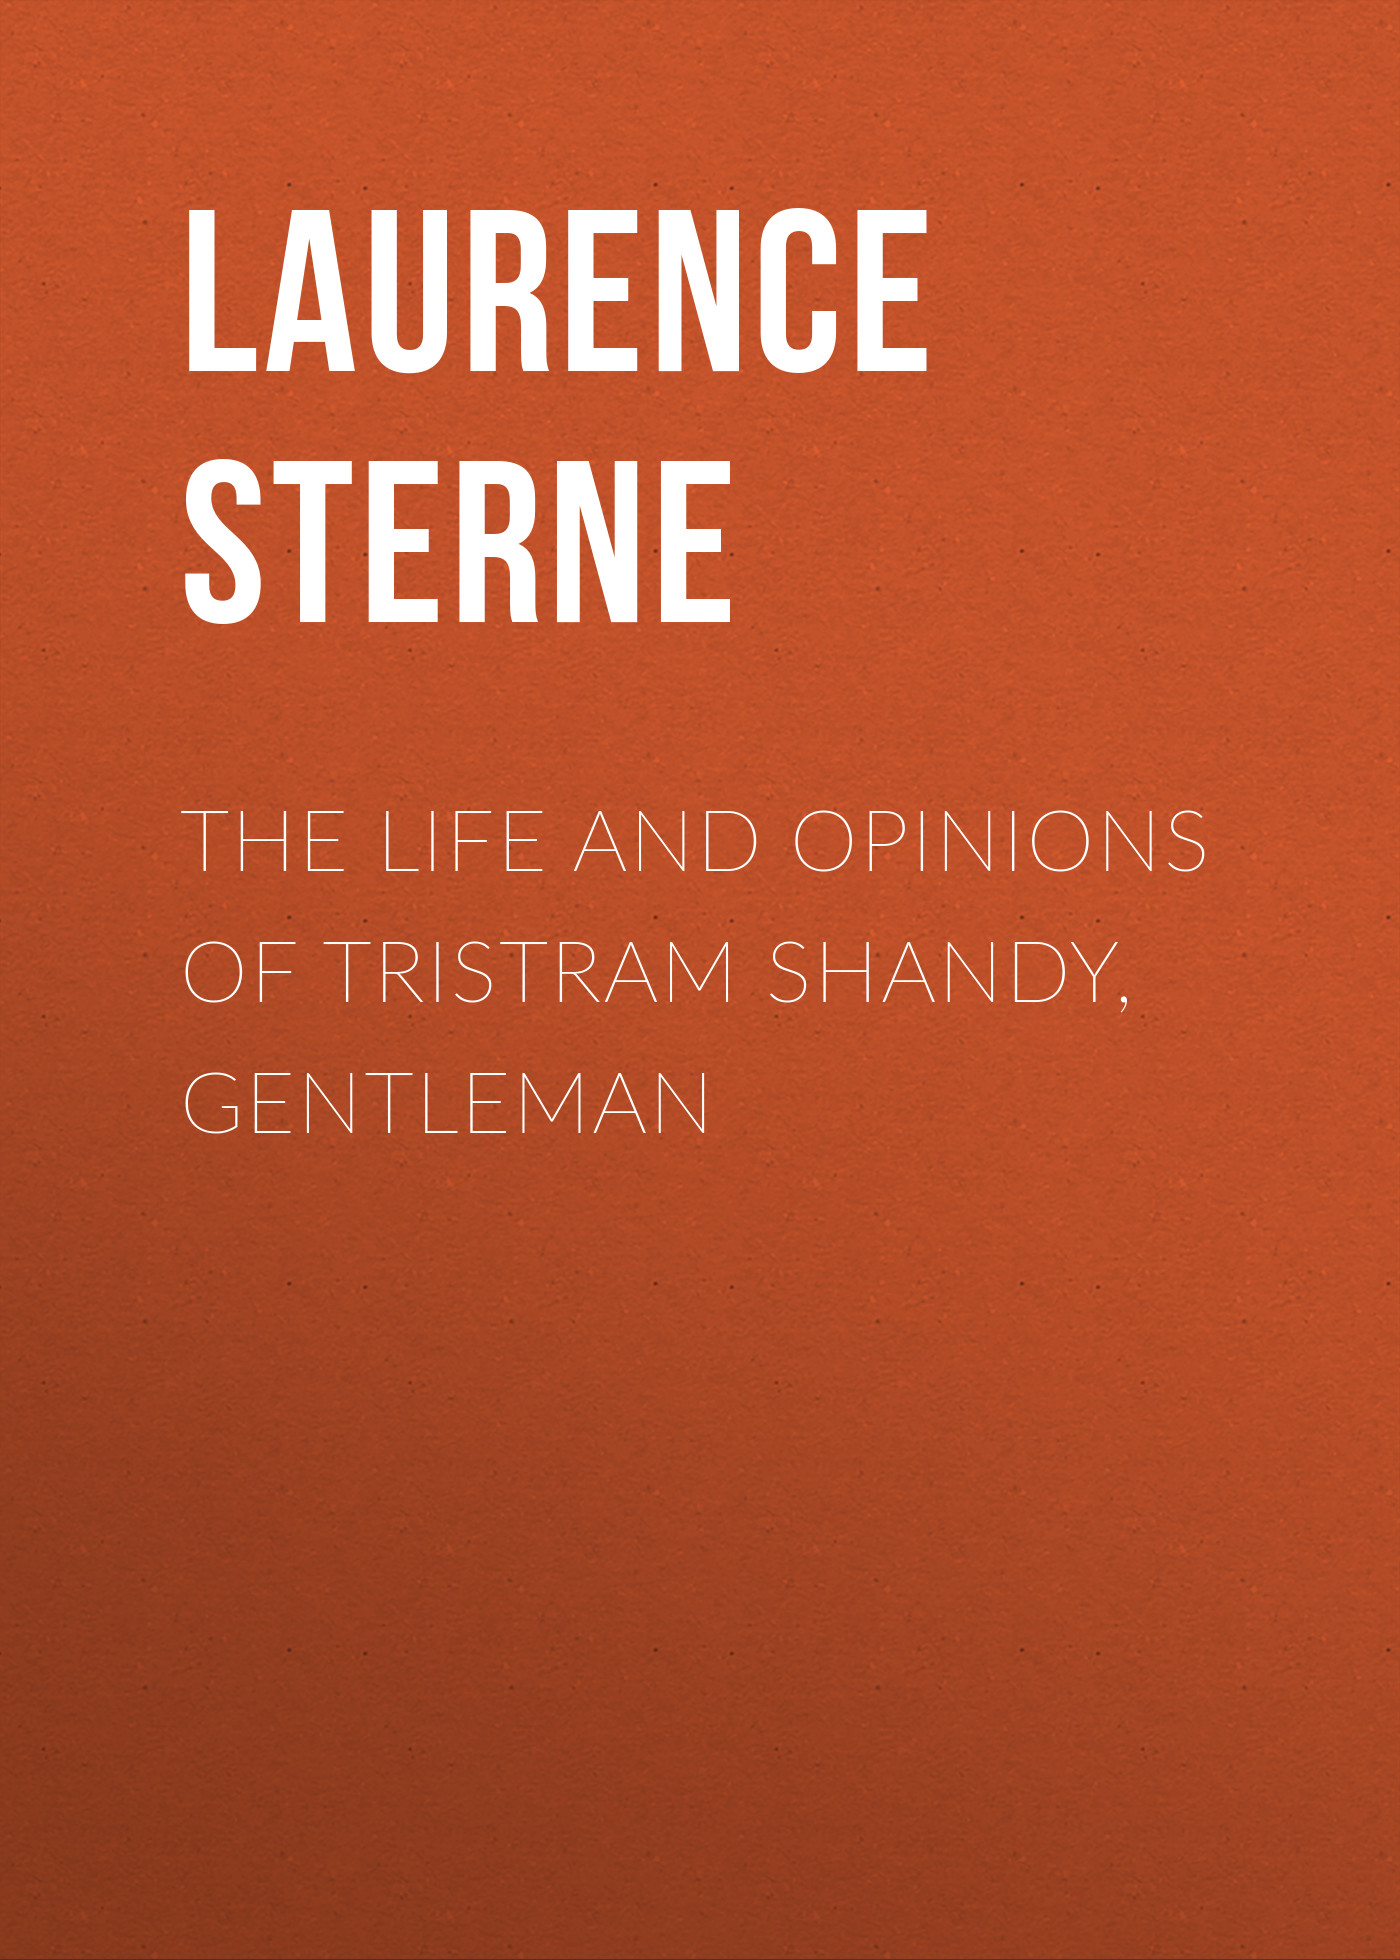 Laurence Sterne The Life and Opinions of Tristram Shandy, Gentleman opinions каталог обуви